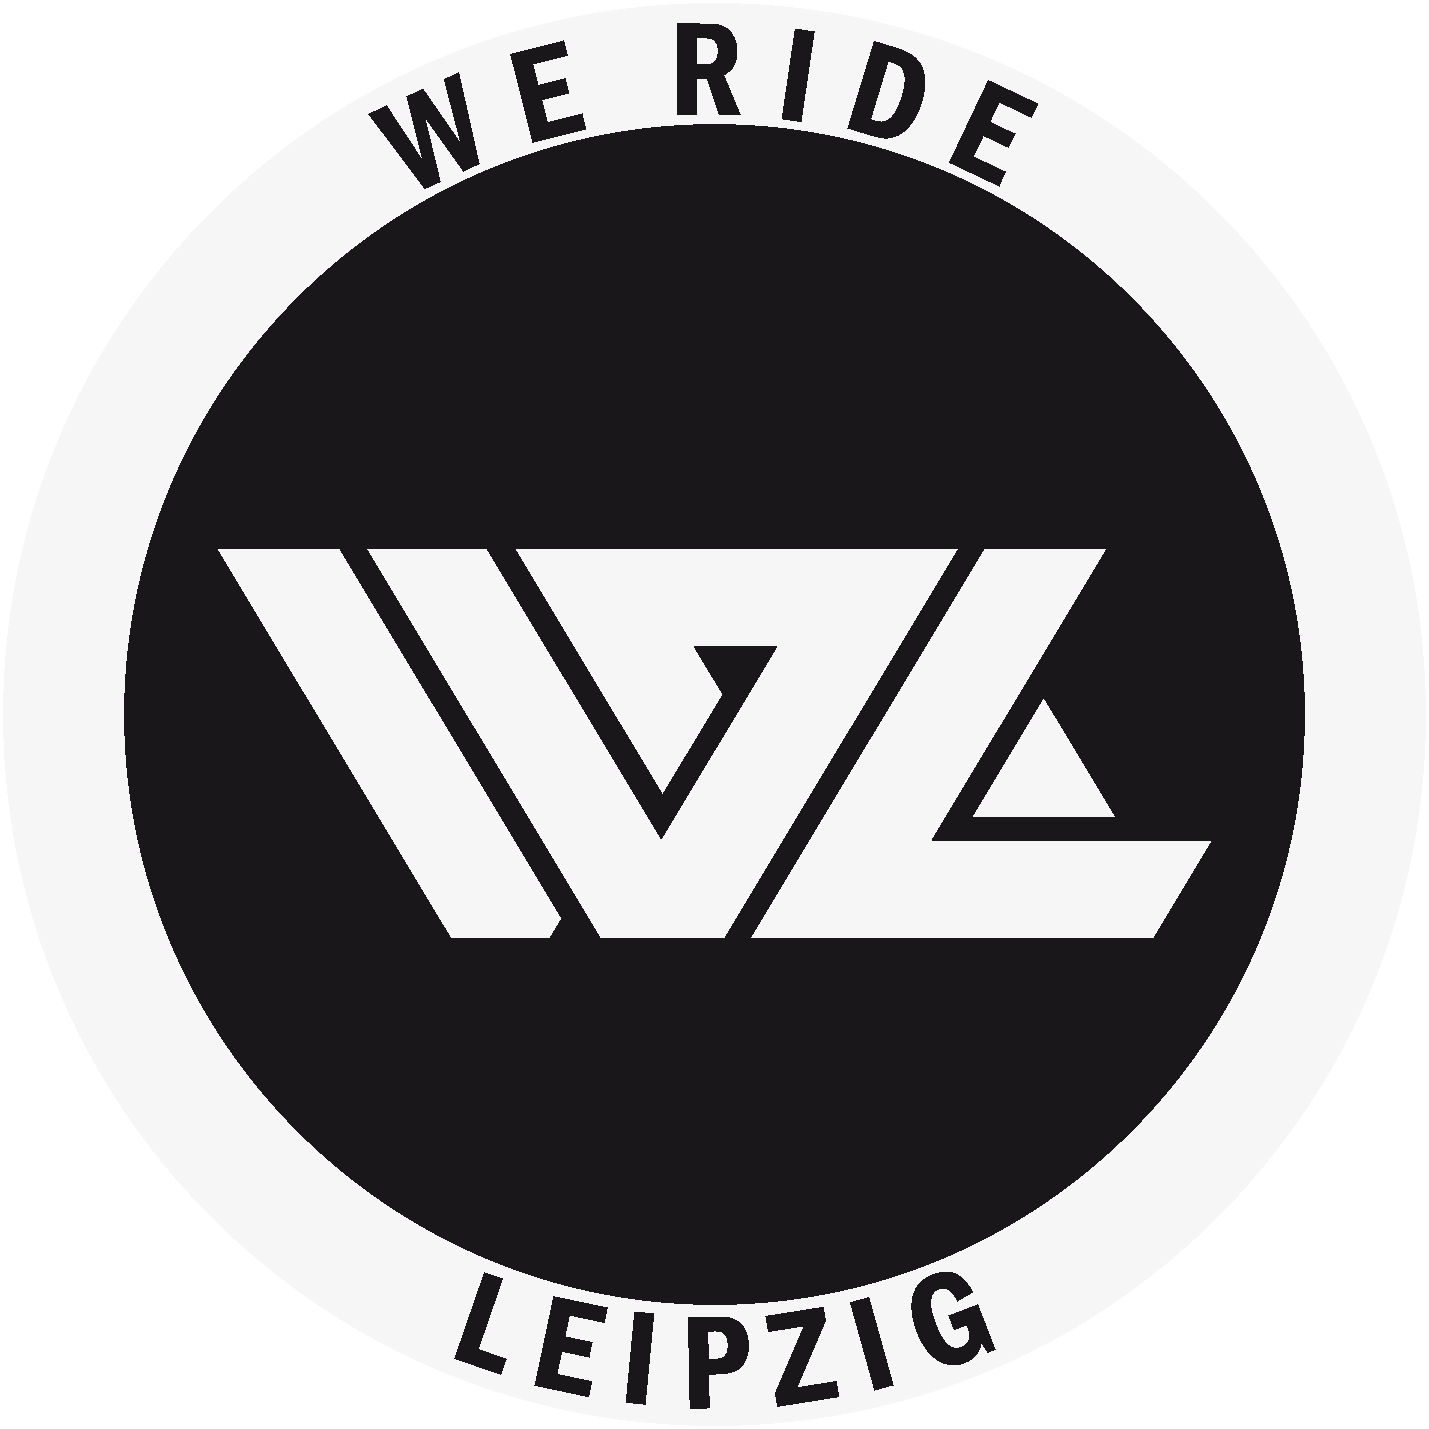 WE RIDE LEIPZIG